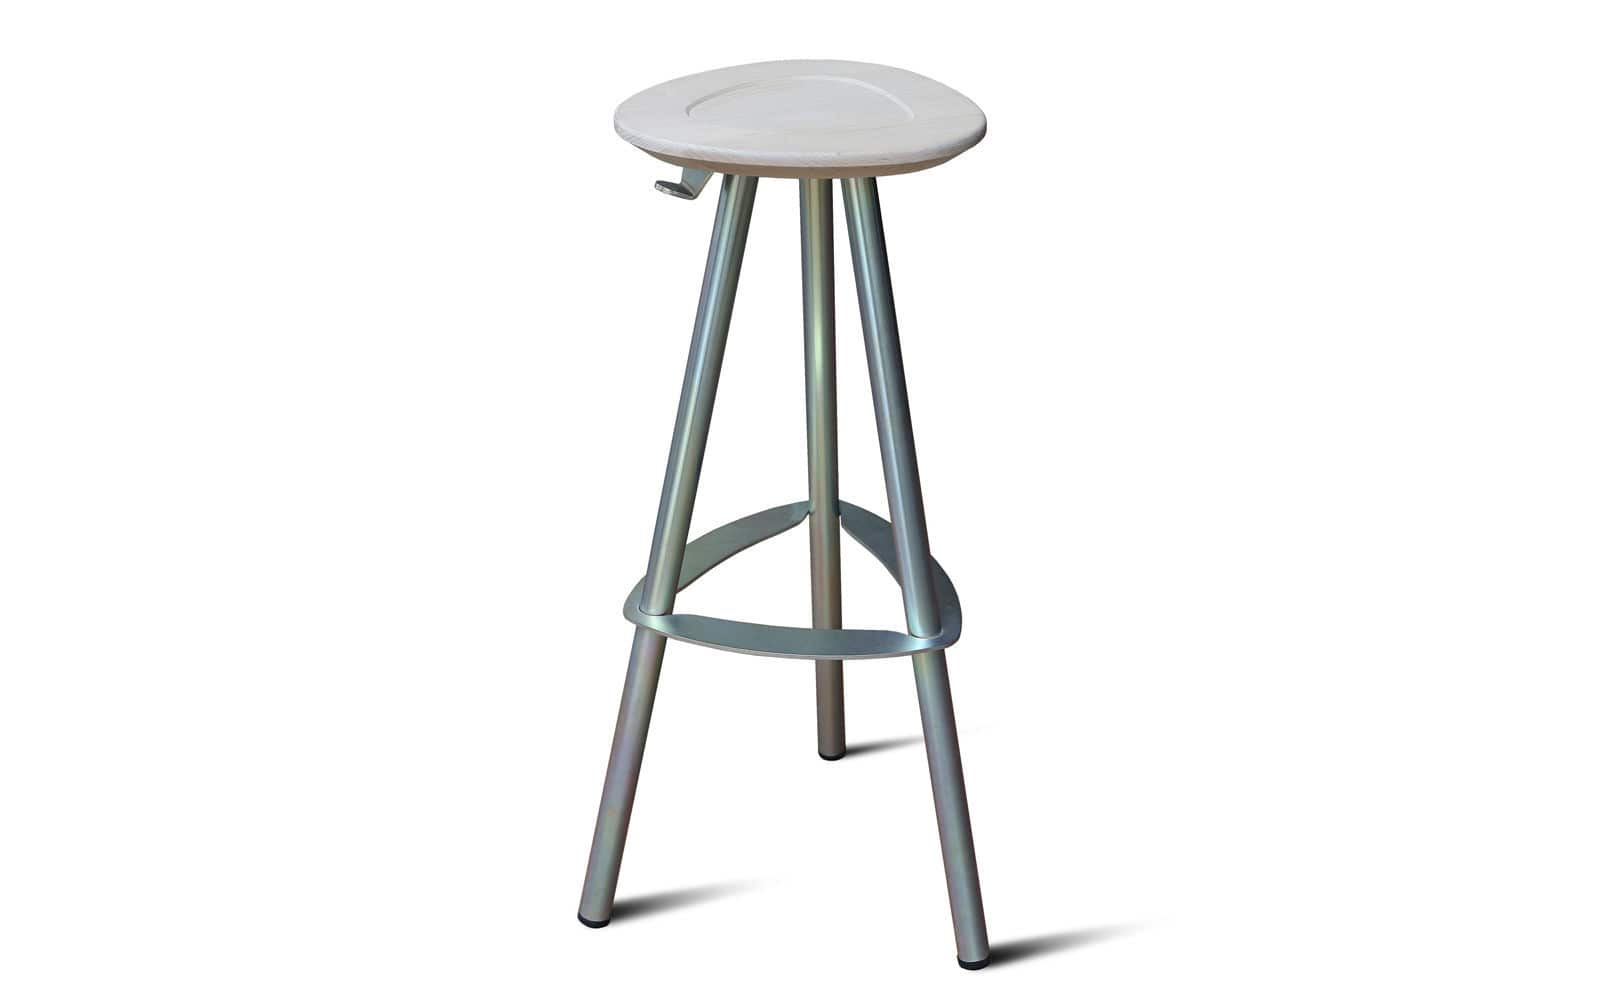 Awesome Contemporary Bar Stool Beech Steel Black Pop By Ocoug Best Dining Table And Chair Ideas Images Ocougorg